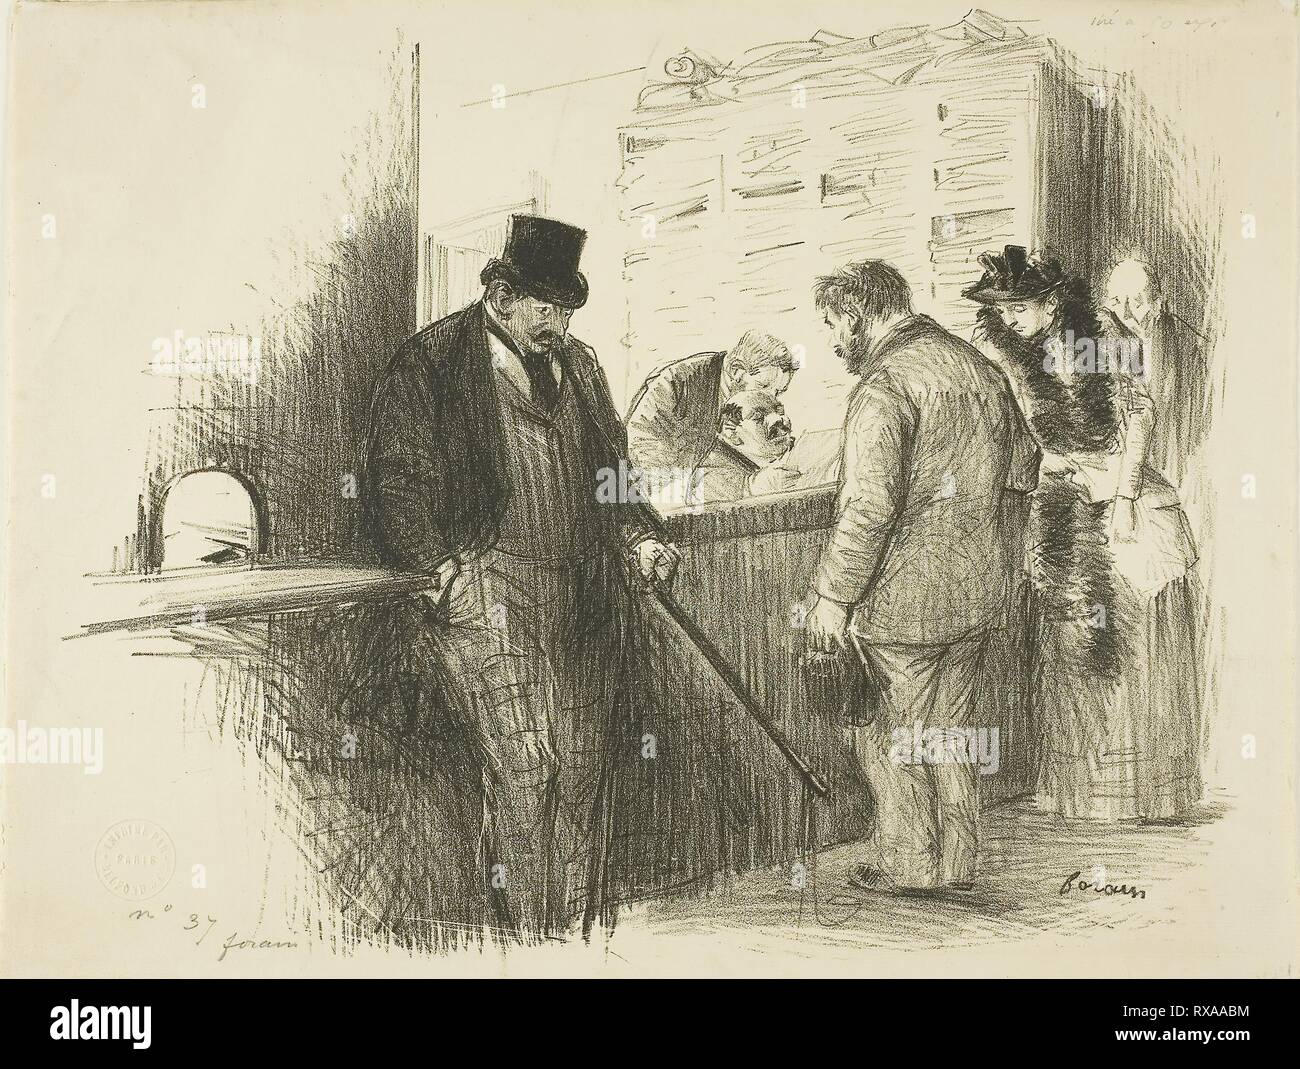 At the Bailiff's. Jean Louis Forain; French, 1852-1931. Date: 1886-1896. Dimensions: 205 × 257 mm (image); 217 × 284 mm (sheet). Lithograph on cream laid paper. Origin: France. Museum: The Chicago Art Institute. - Stock Image